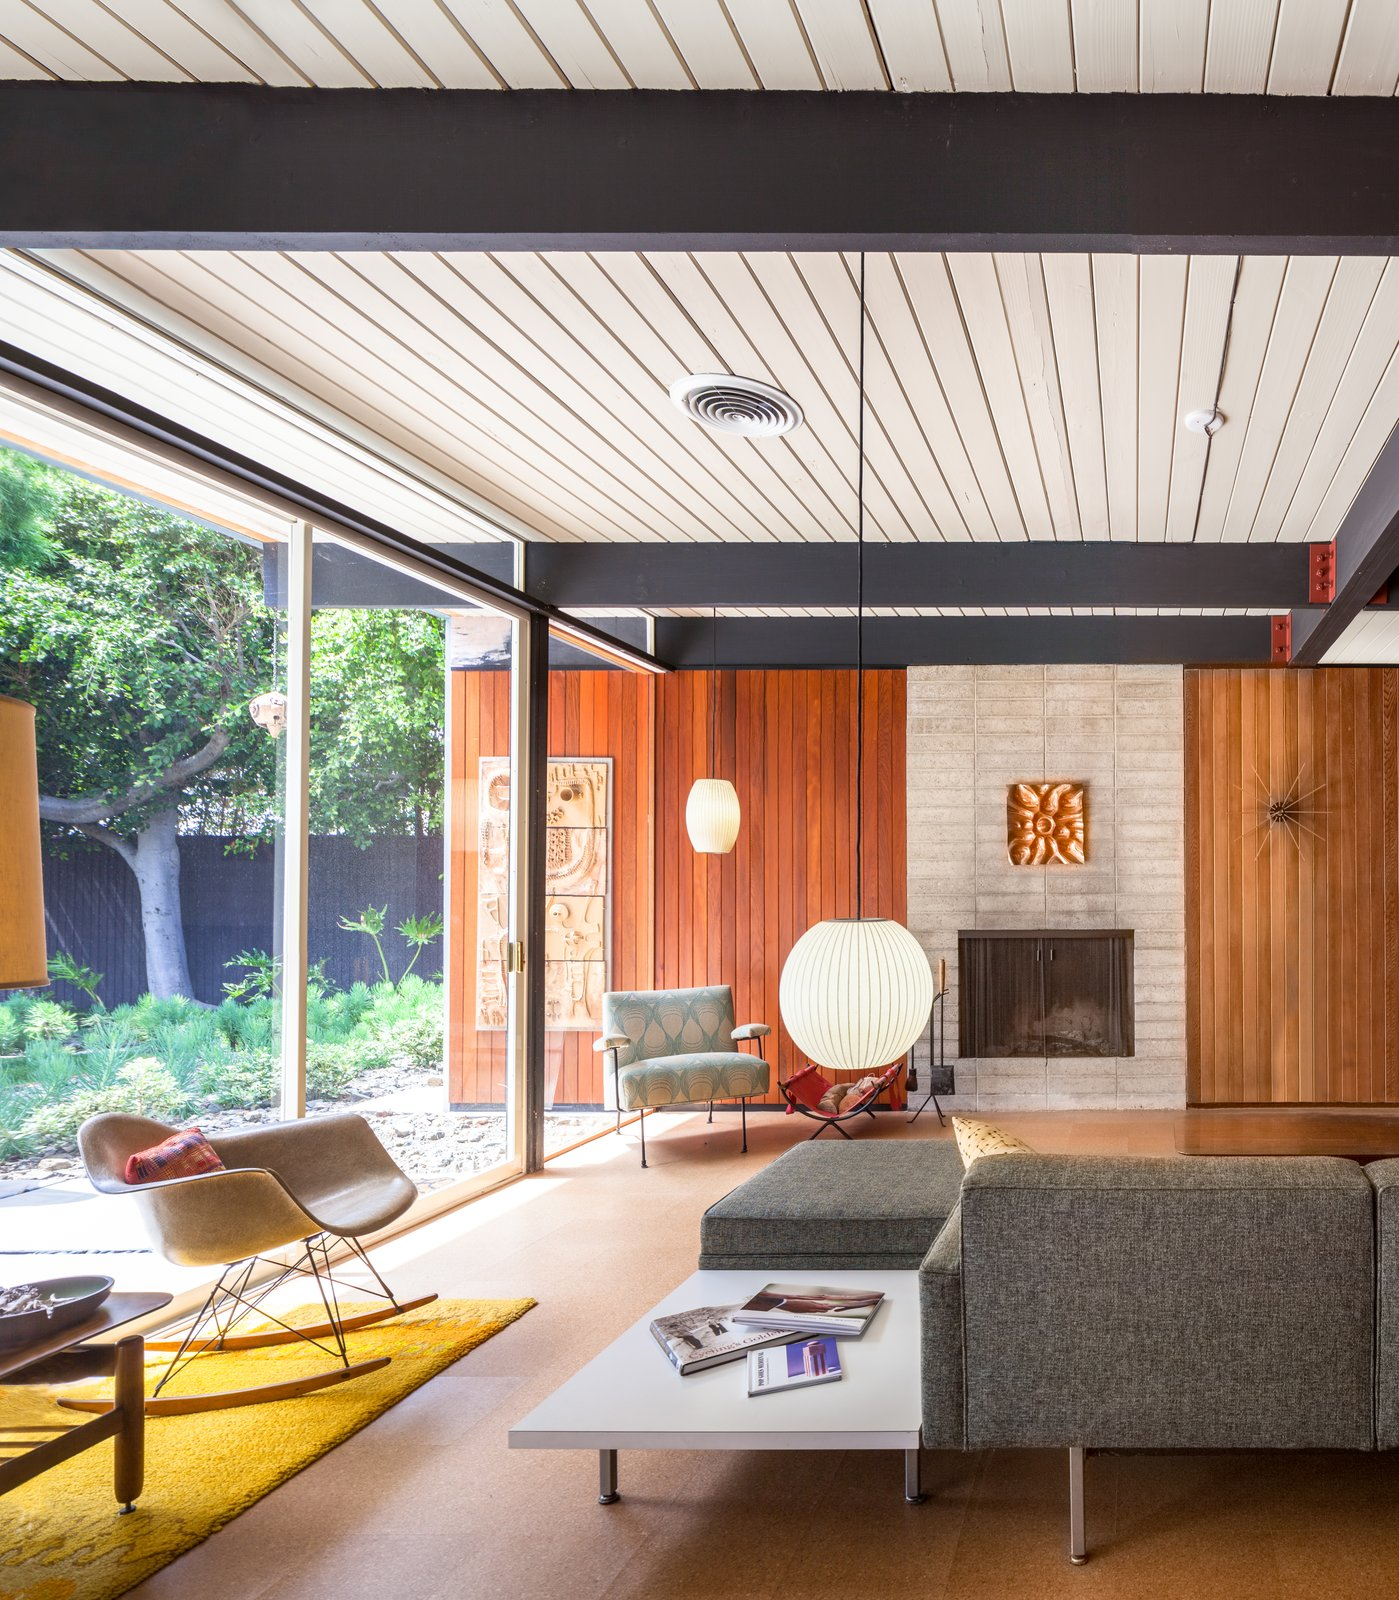 Living, Sofa, End Tables, Chair, Pendant, Cork, and Standard Layout  Best Living Standard Layout Photos from A Stunningly Restored Midcentury by Case Study Architect Craig Ellwood Asks $800K in San Diego